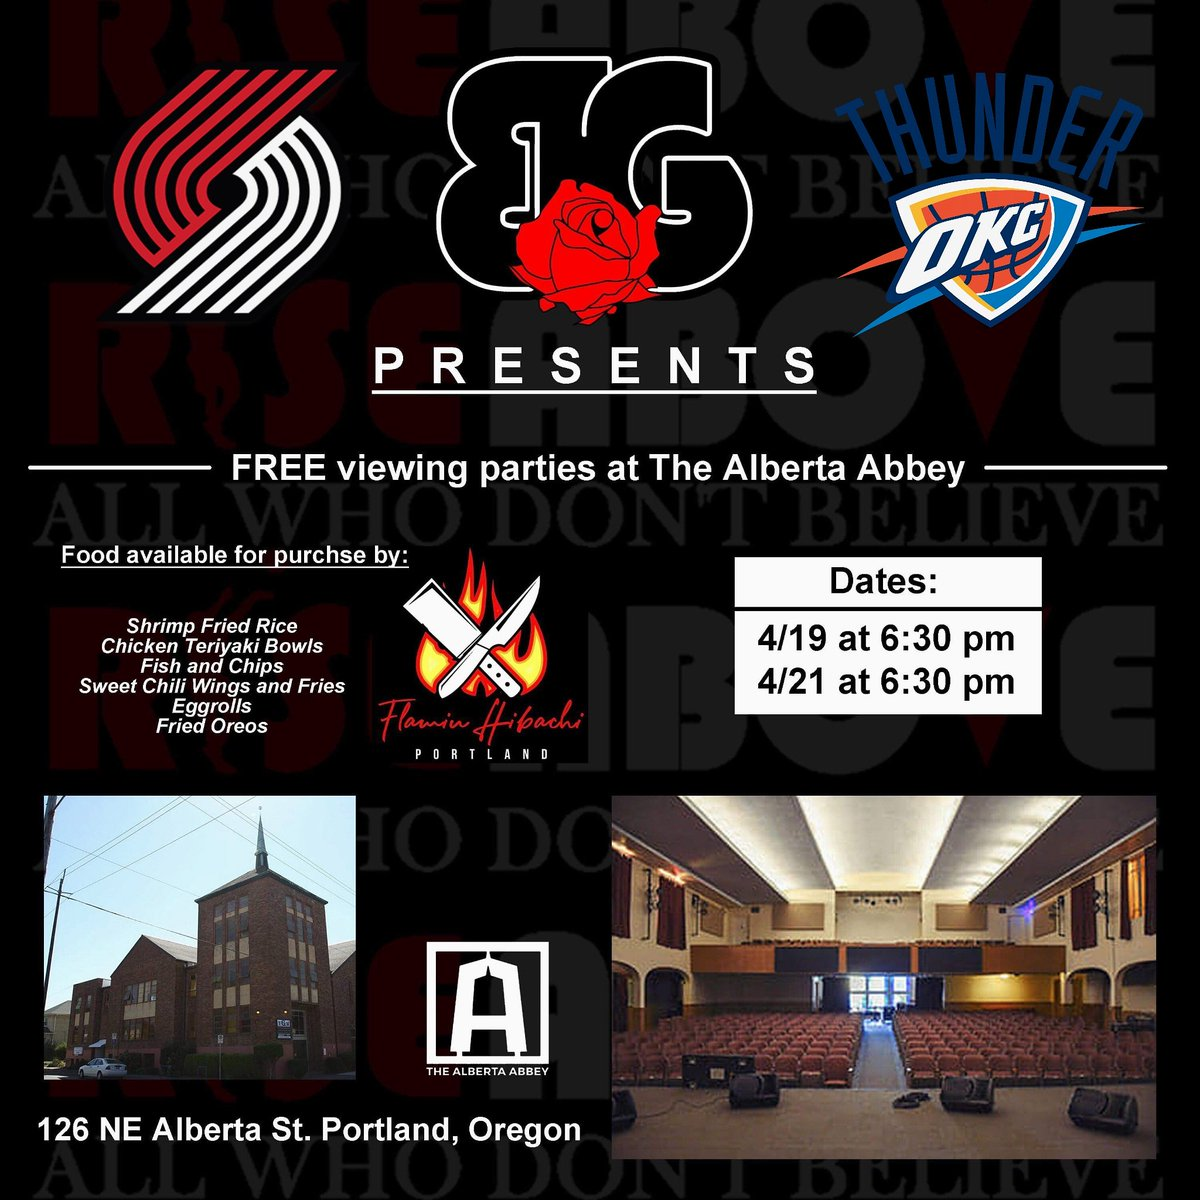 #BombsAway TShirt GIVEAWAY  1) RT our event flyer 2) COMMENT DONE  #RIPCITY <br>http://pic.twitter.com/tT7oT09U7b